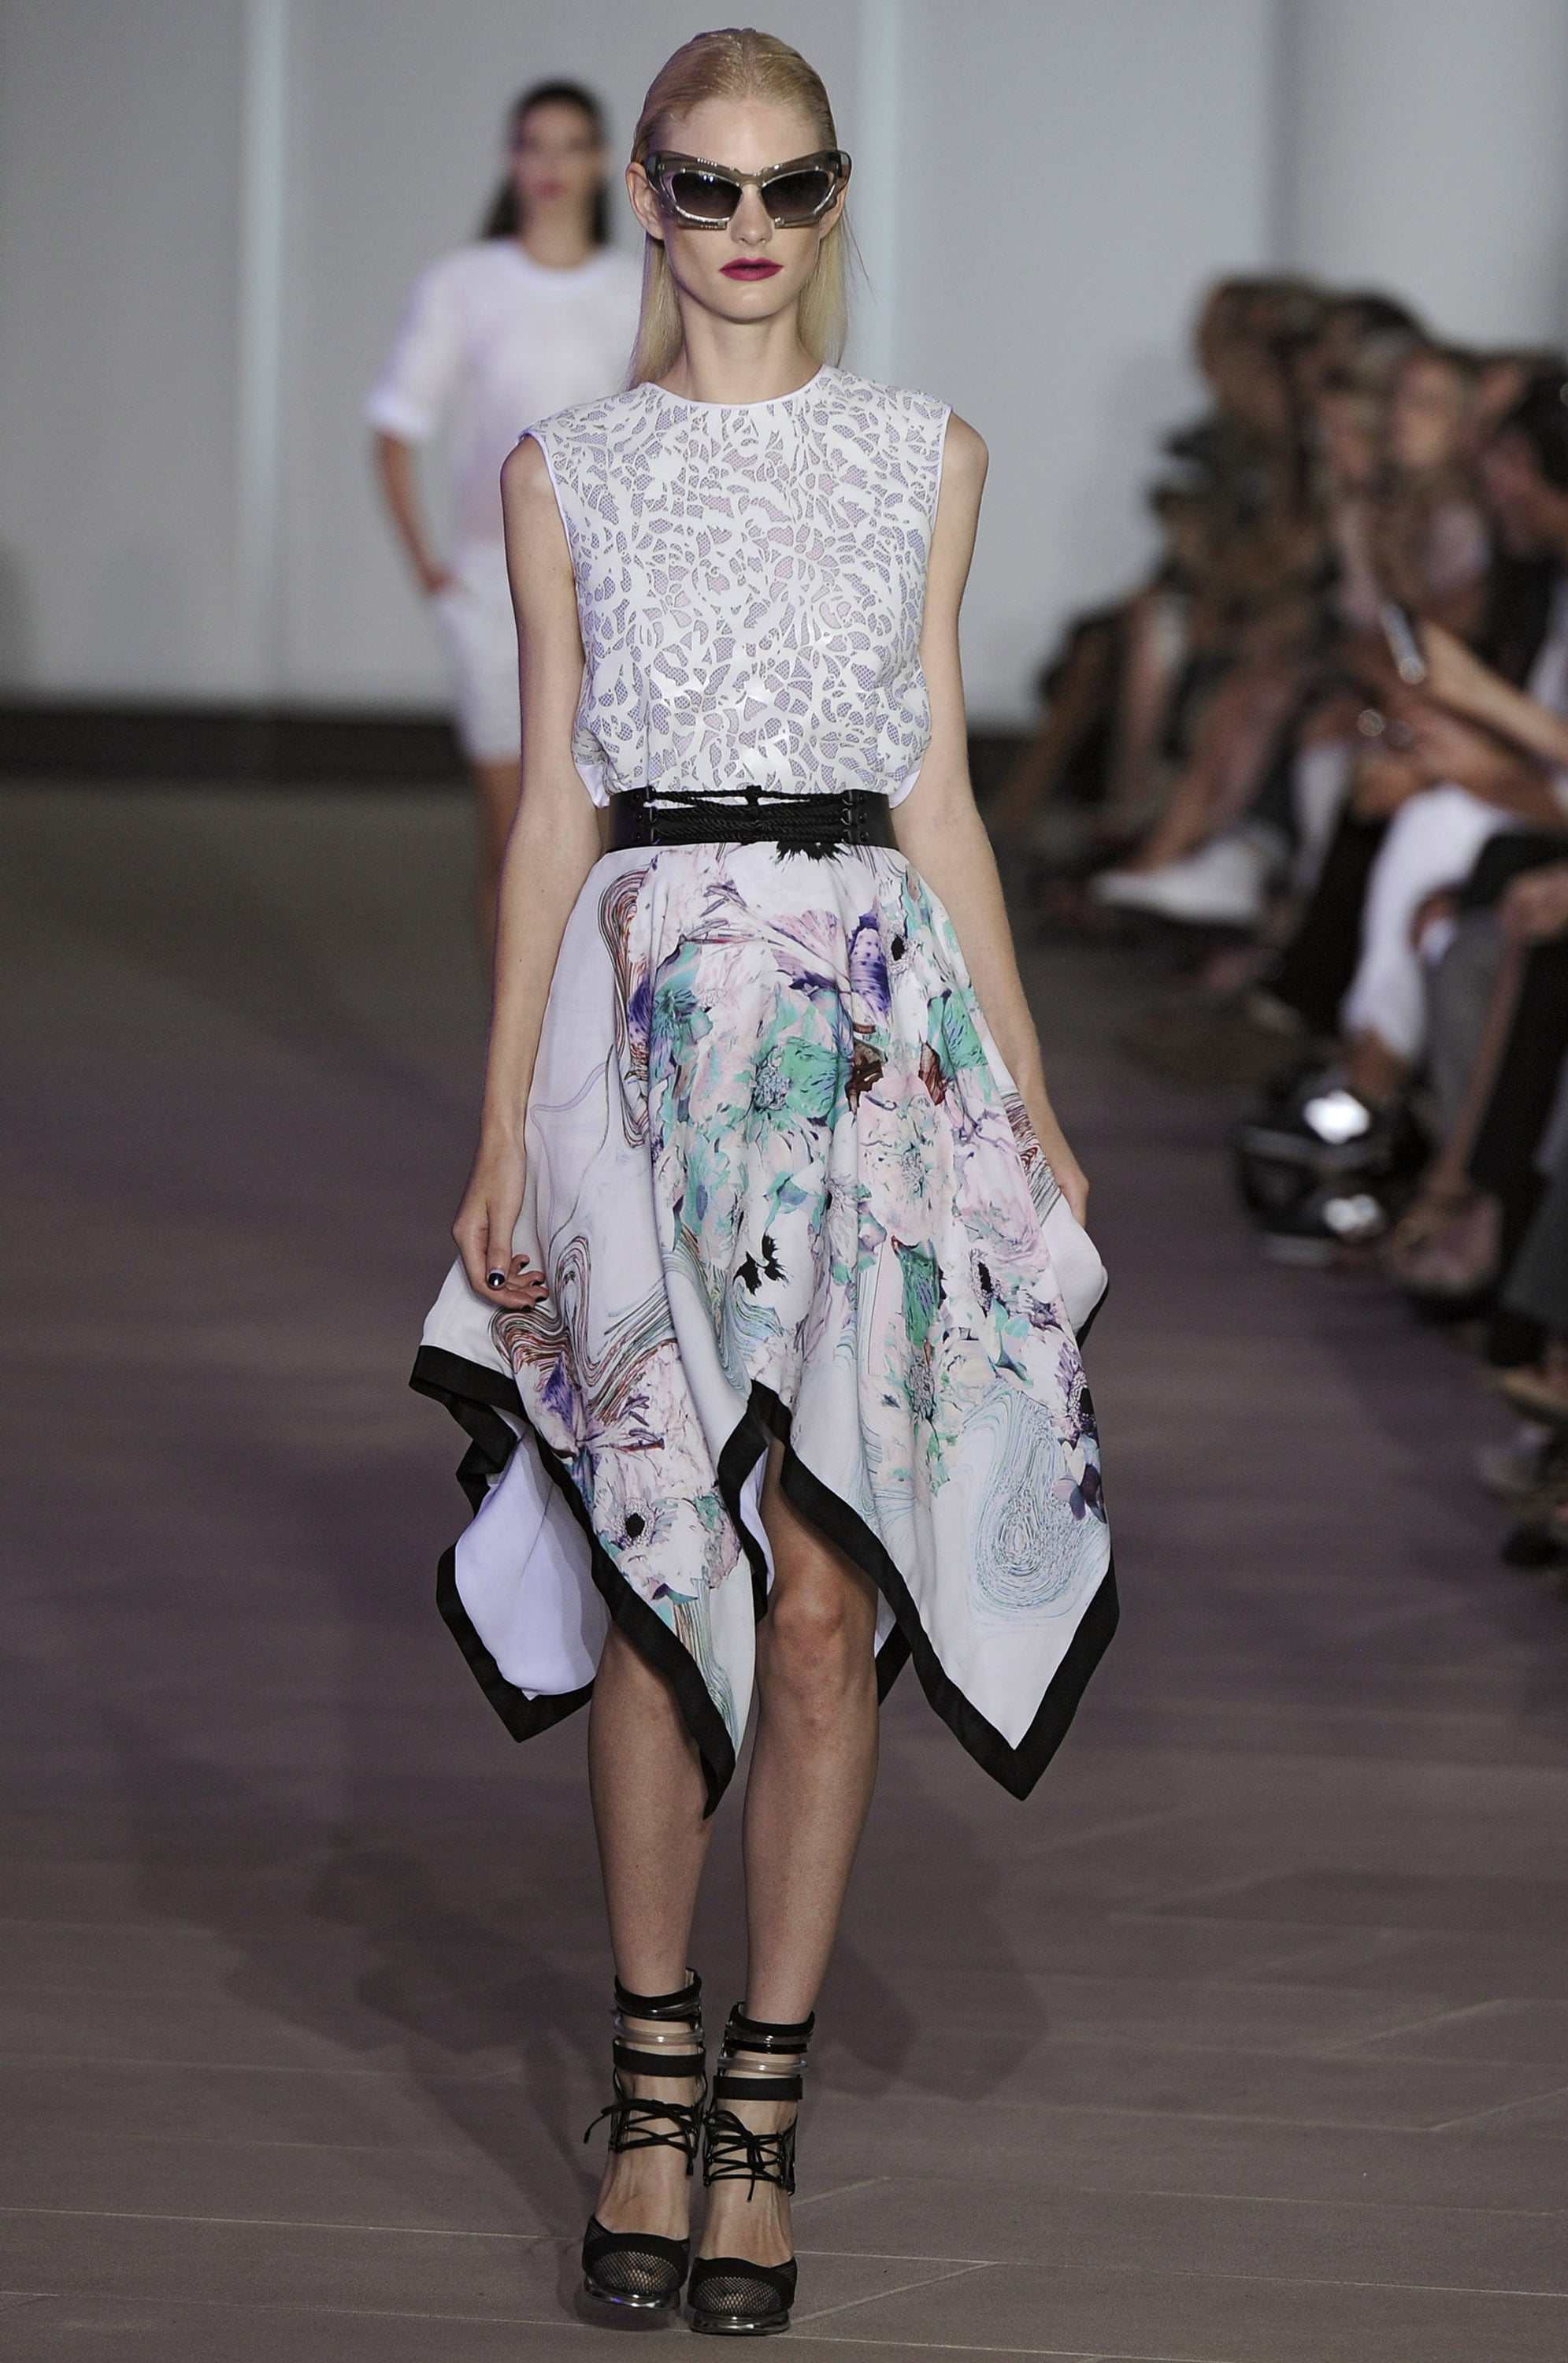 Runway Review And Pictures Of Prabal Gurung 39 S 2012 Spring Presentation At New York Fashion Week